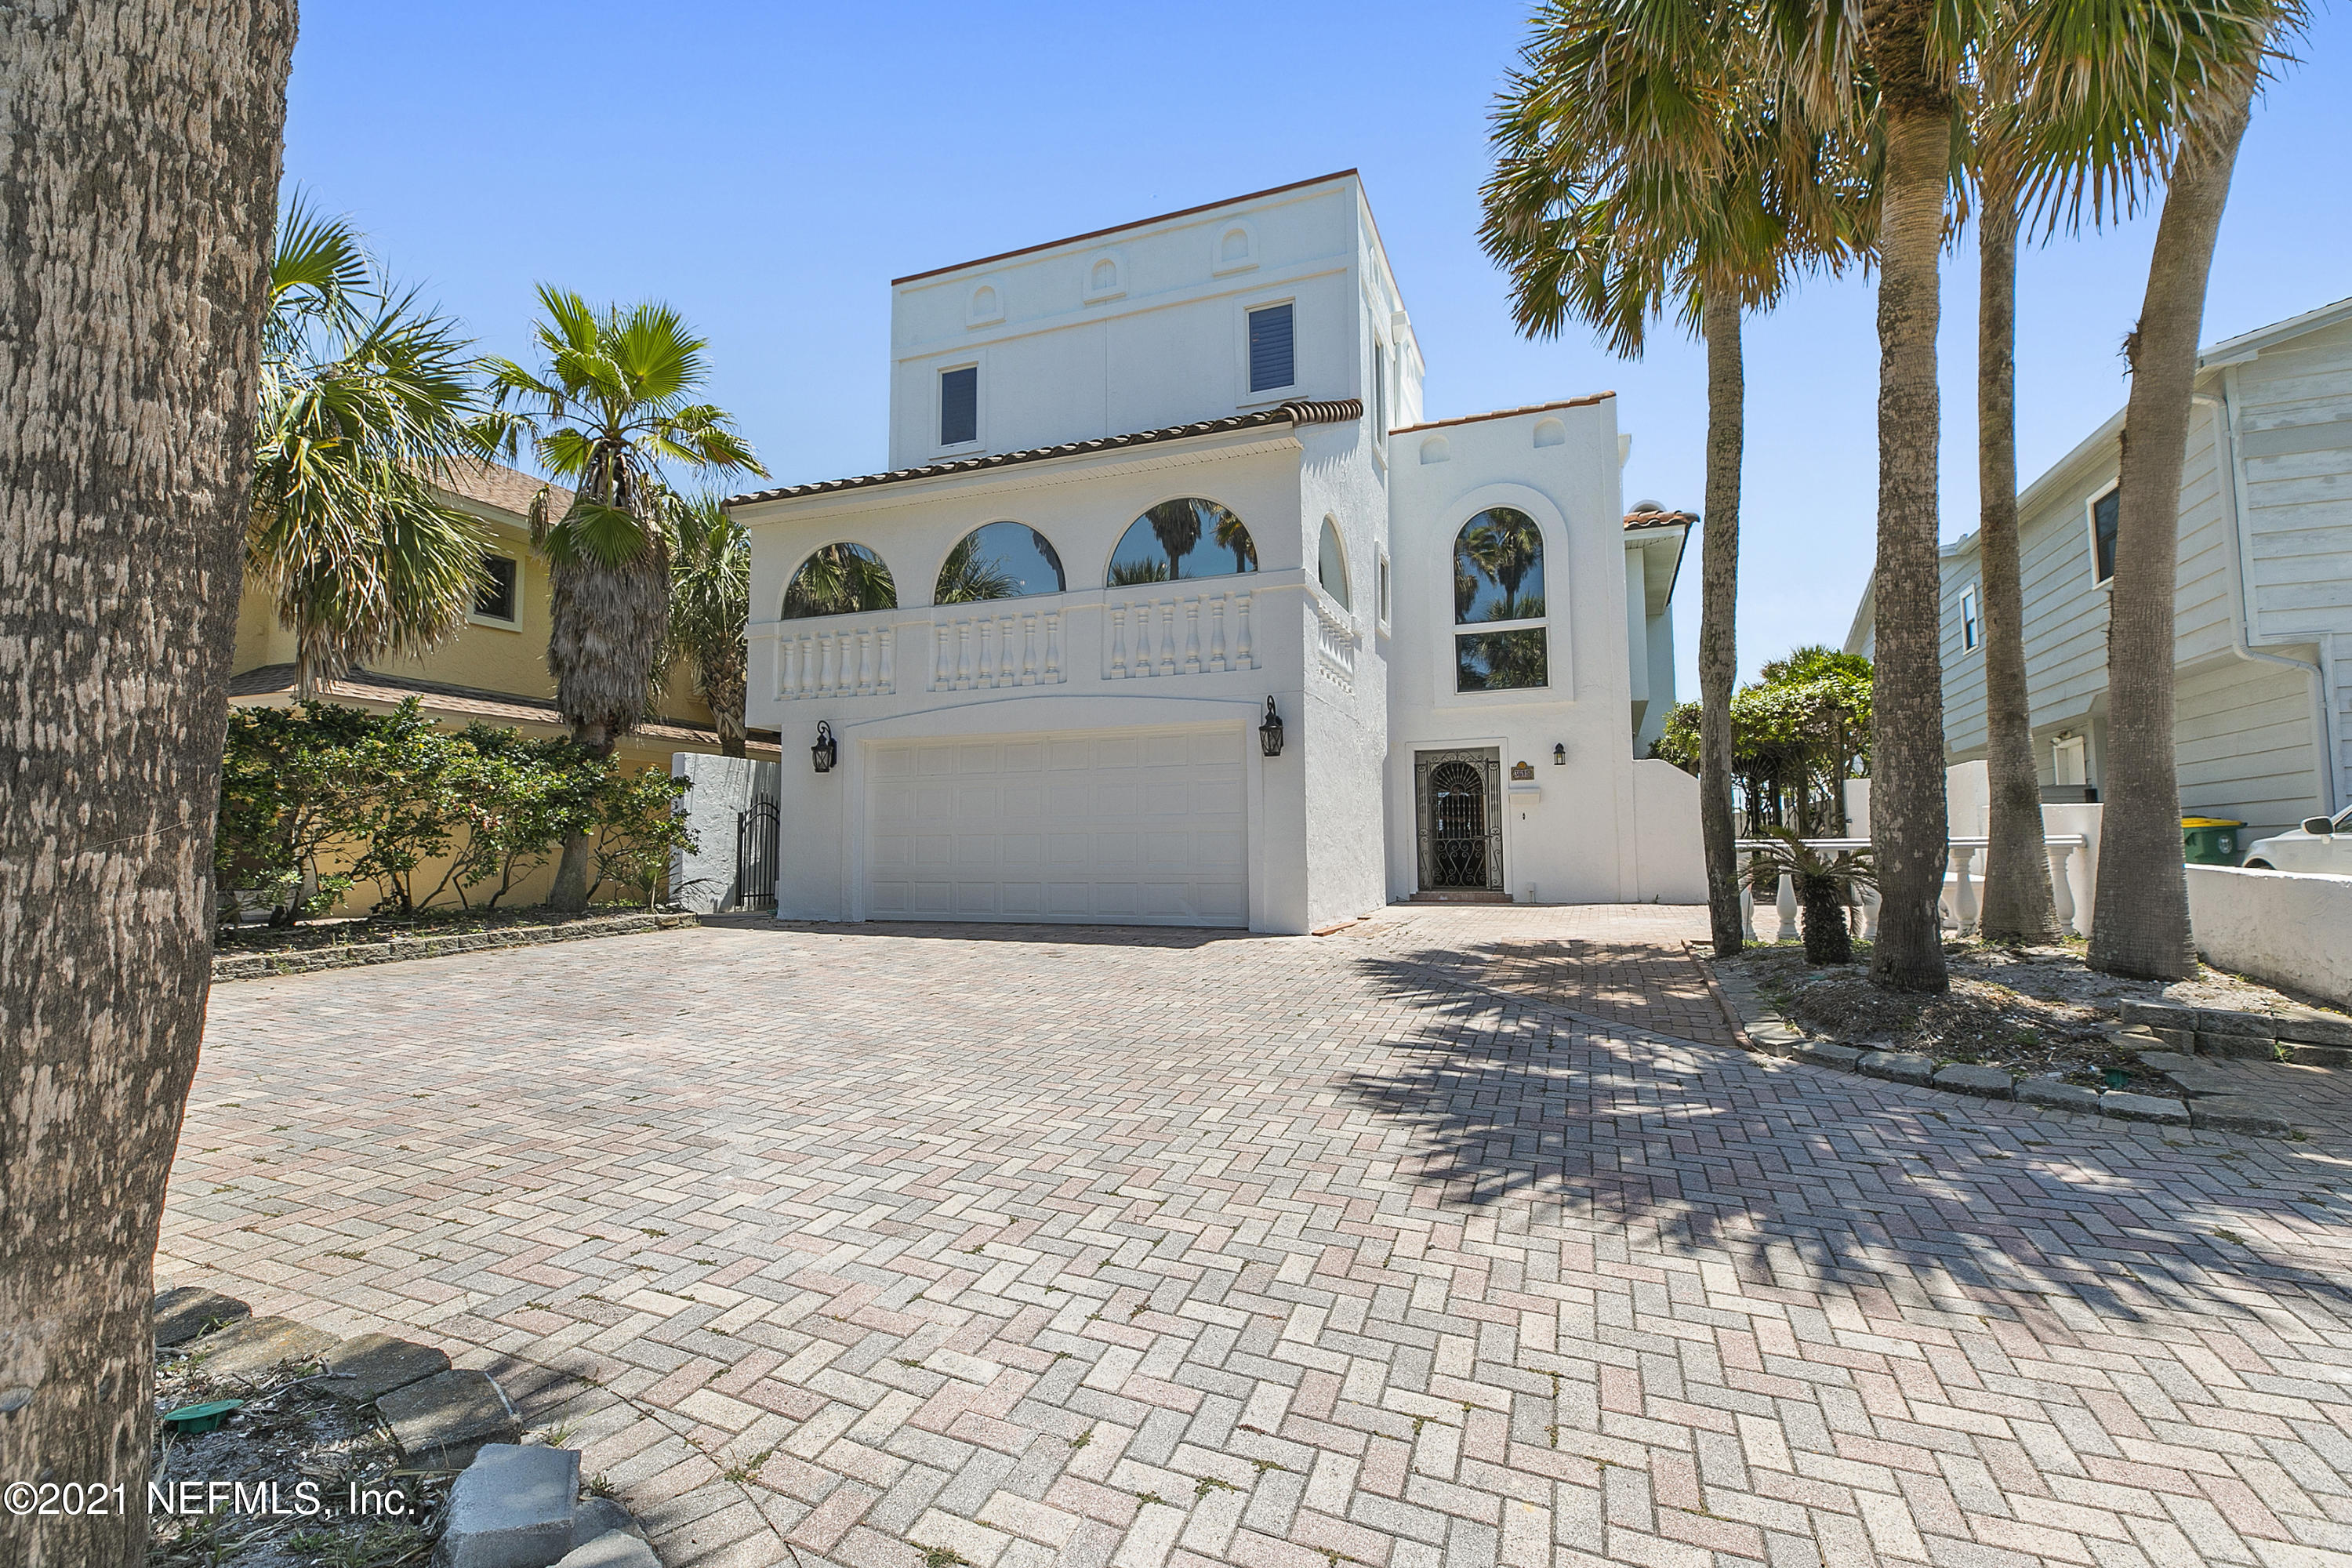 Beautiful ocean front home in Jacksonville Beach to live in or vacation. Minutes from the Ponte Vedra Inn & Club, shopping and restaurants. Outstanding stone patio and porch overlooking the Atlantic Ocean. Life style at it's best.